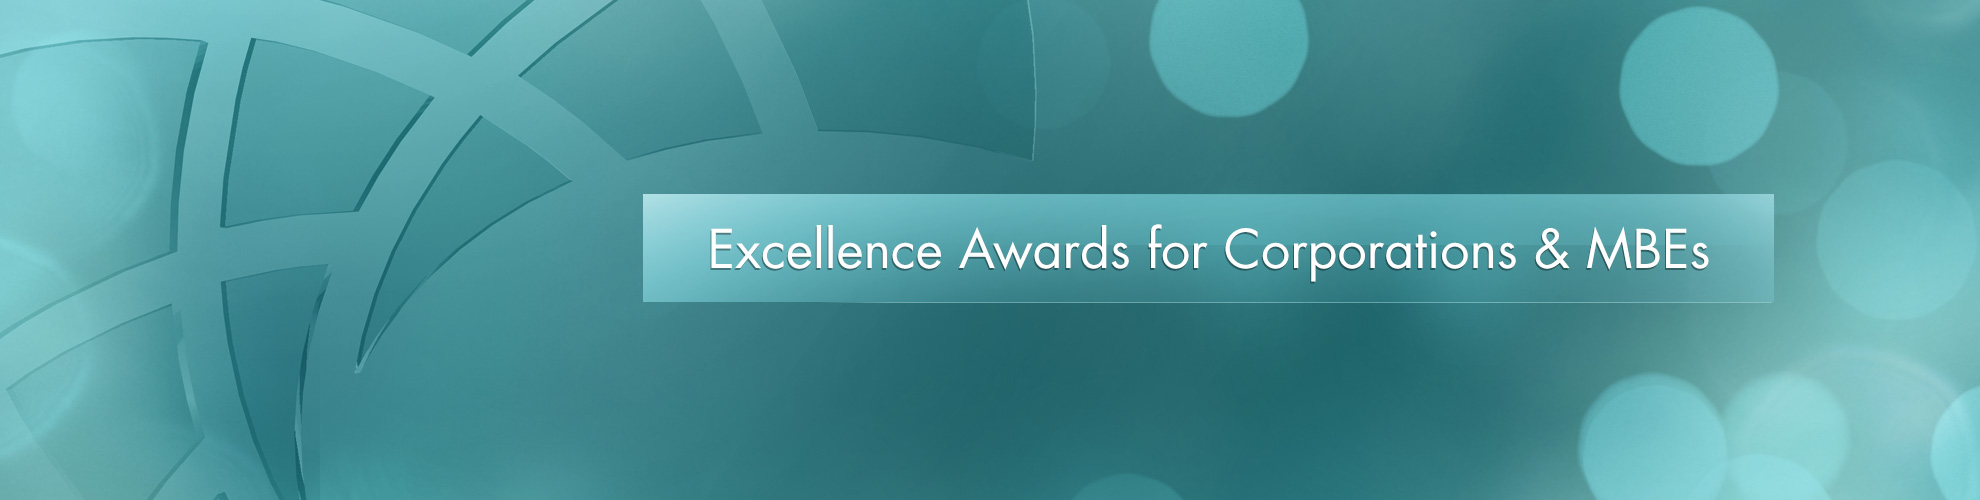 excellence_awards-1